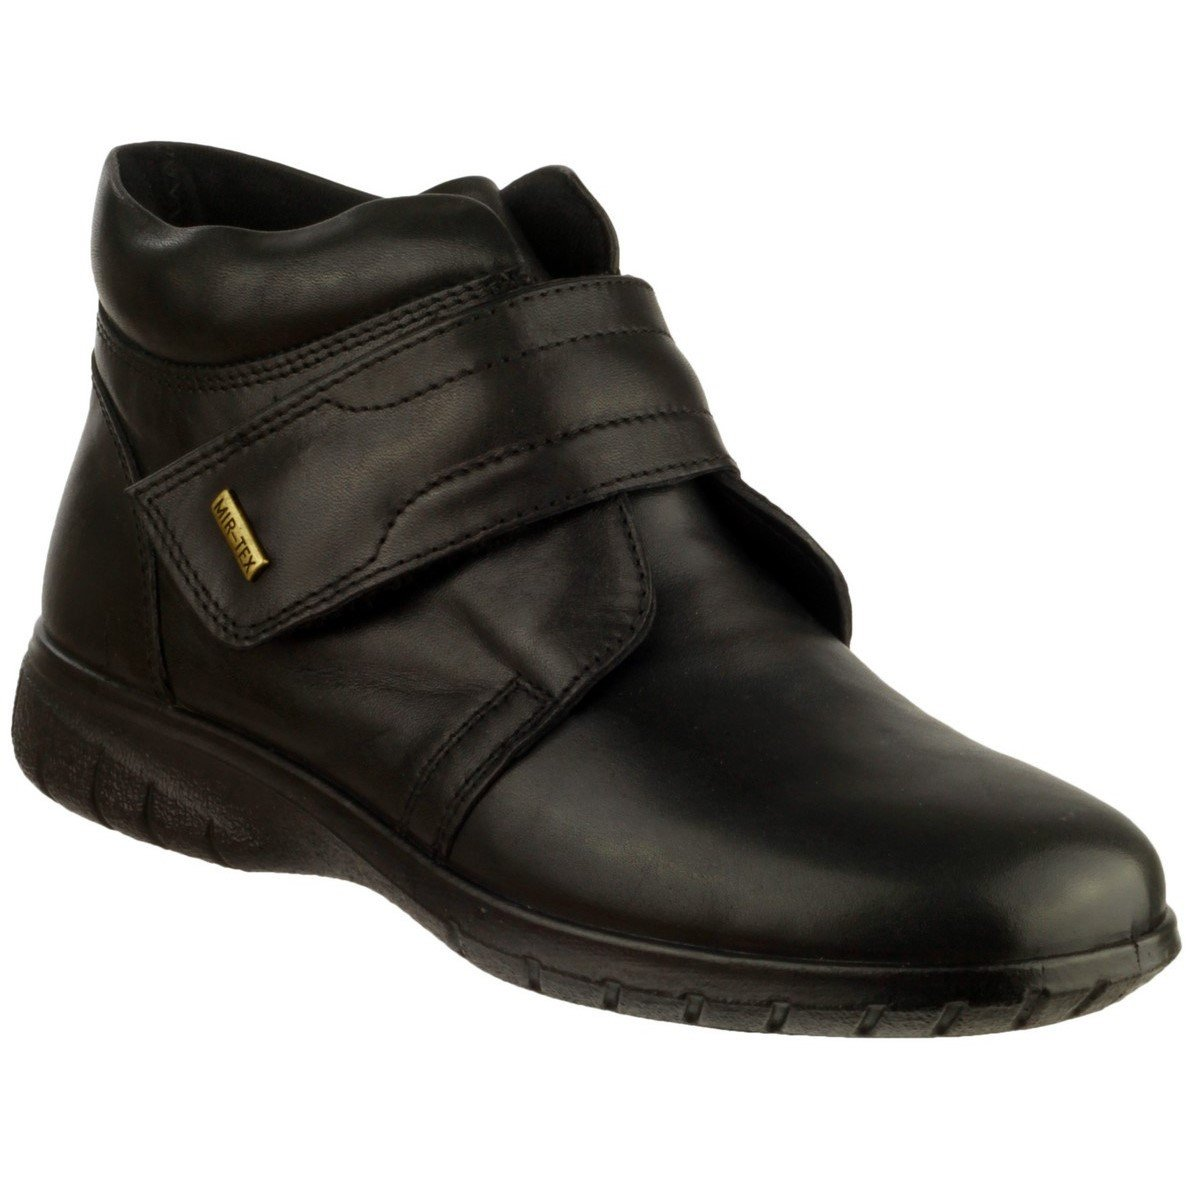 Cotswold Women's Chalford 2 Ankle Boot Various Colours 32977 - Black 4